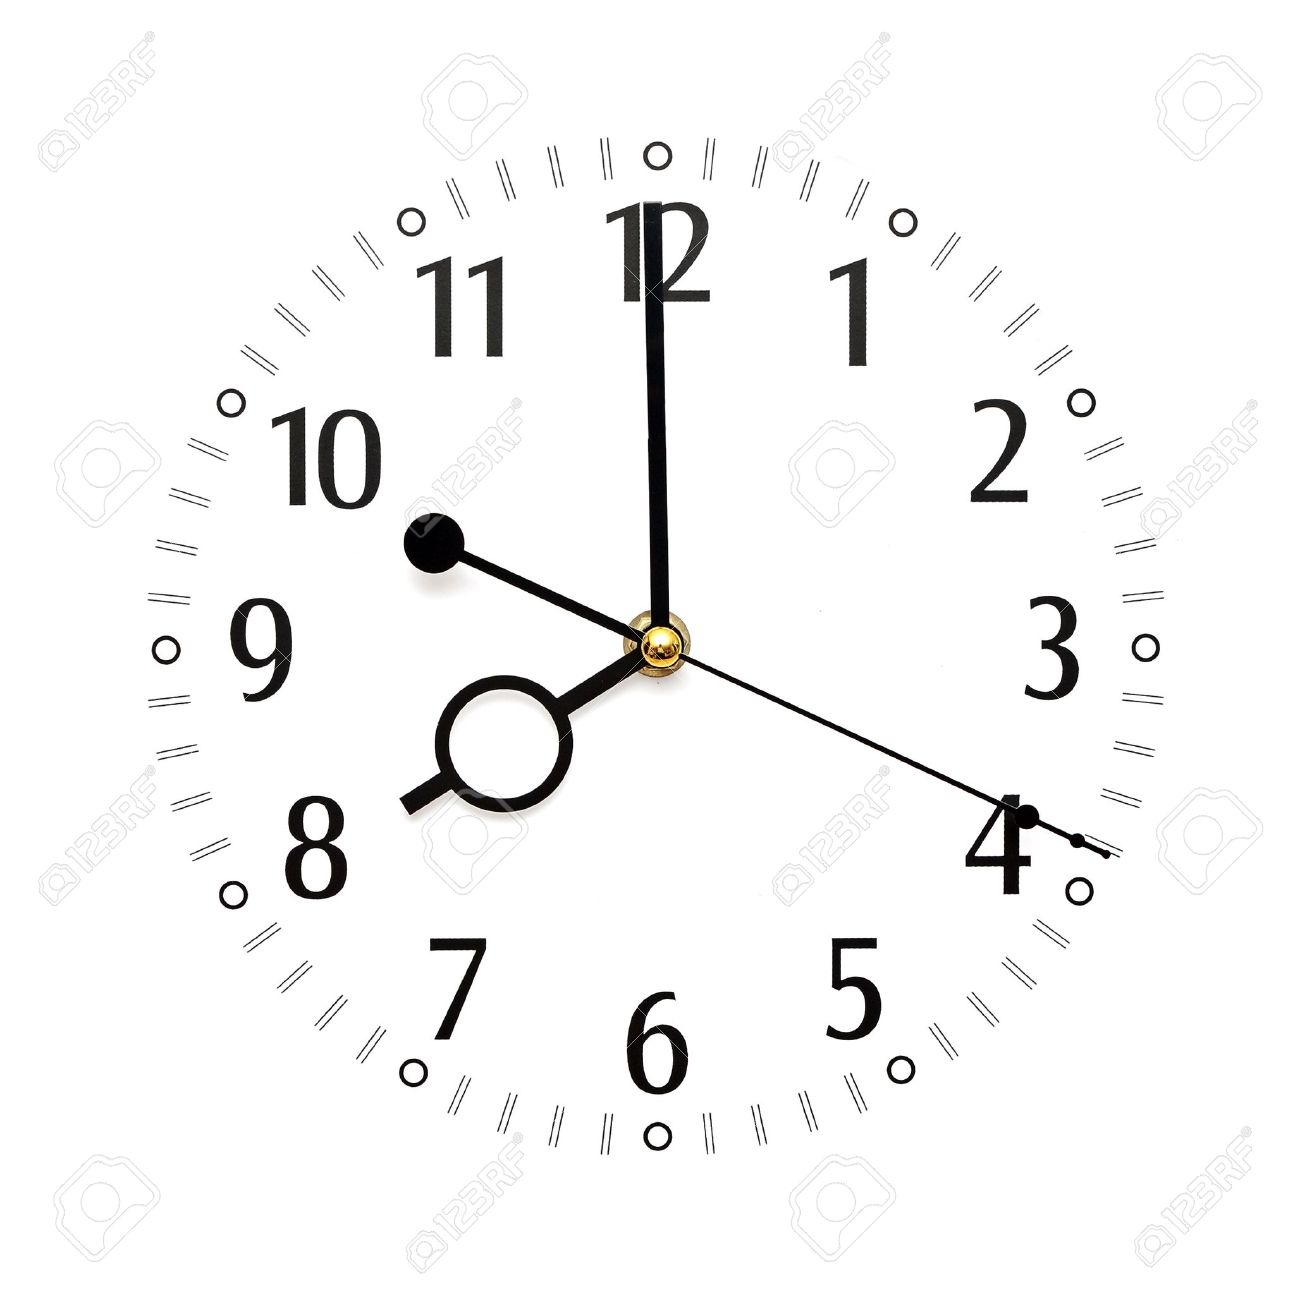 Word Wall Clock Long Windedness Anecdotes Post No 2889 Tamil And Vedas